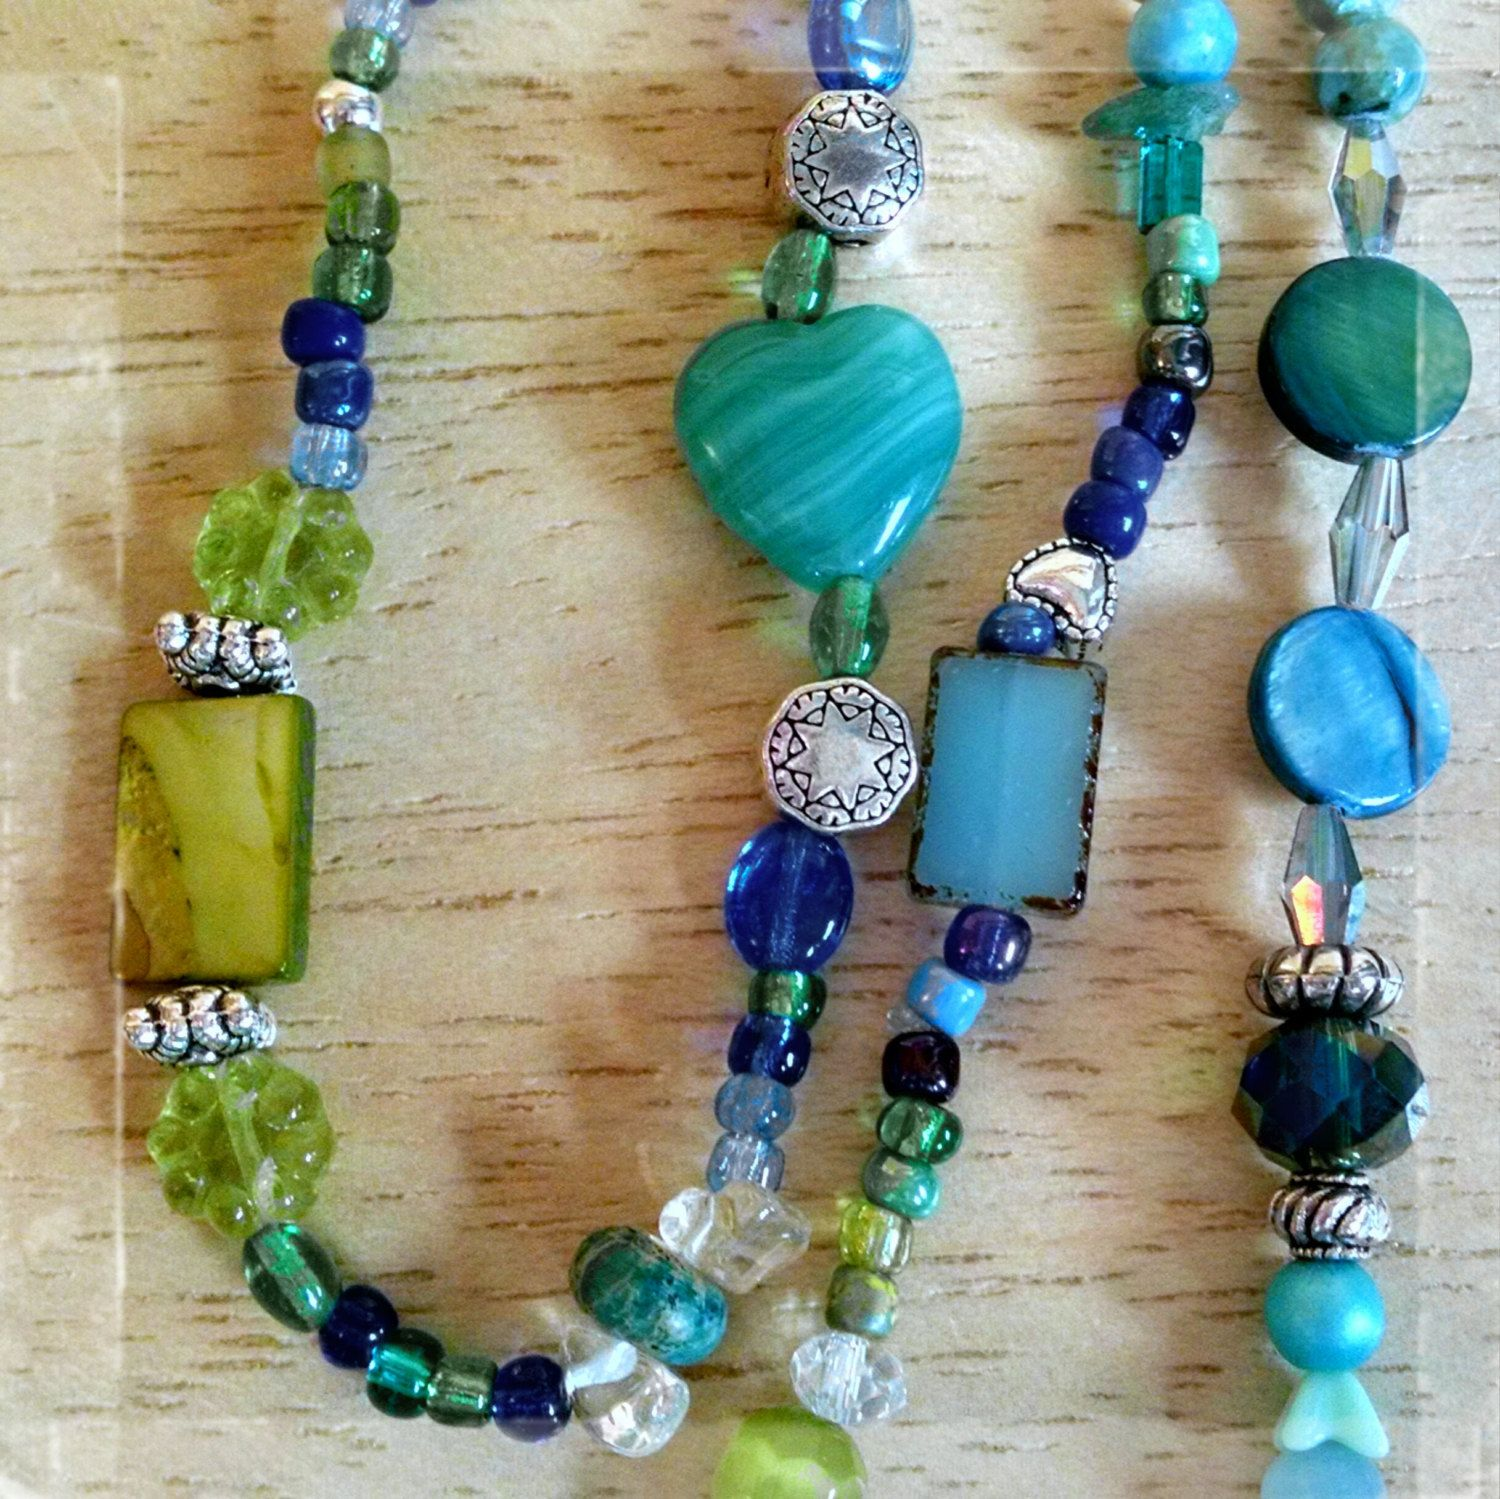 Forever ~Creative Soul Expression~ Intention Infused beaded adornment strand by MyArtOfAlchemy on Etsy https://www.etsy.com/listing/214065281/forever-creative-soul-expression